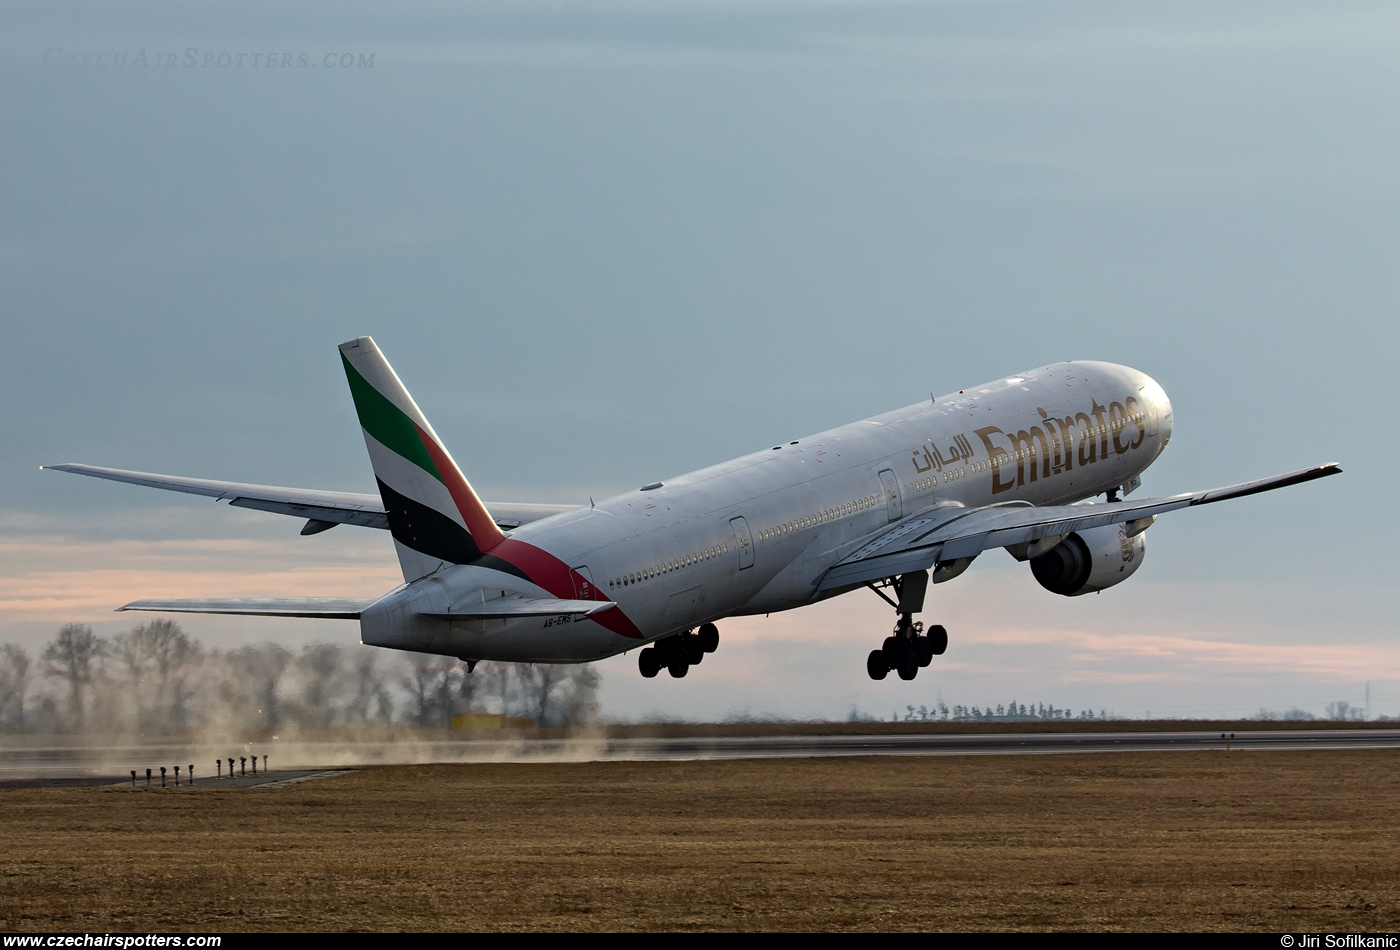 Emirates Airlines – Boeing B777-31H A6-EMS